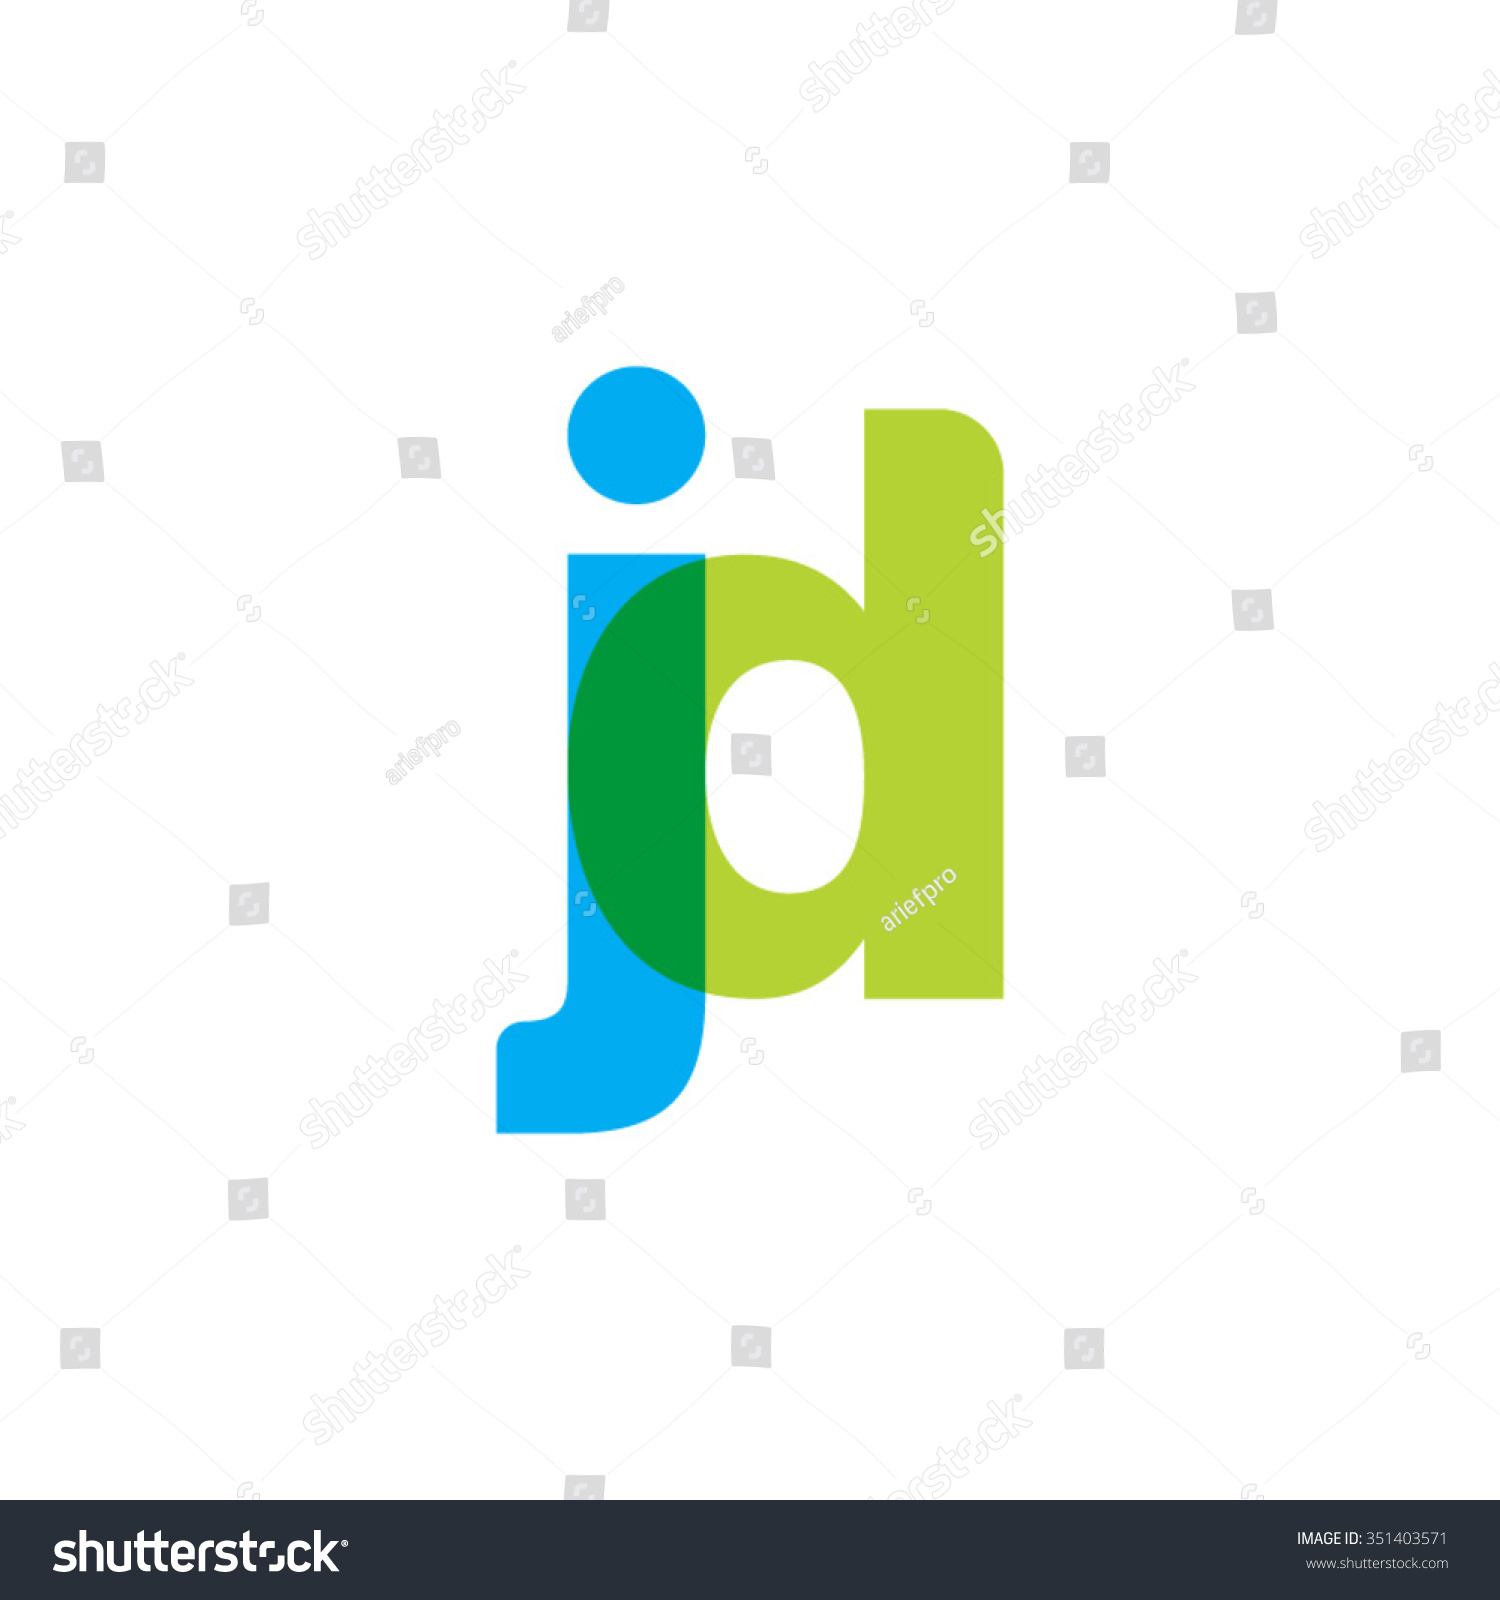 lowercase jd logo blue green overlap stock vector royalty free 351403571 shutterstock